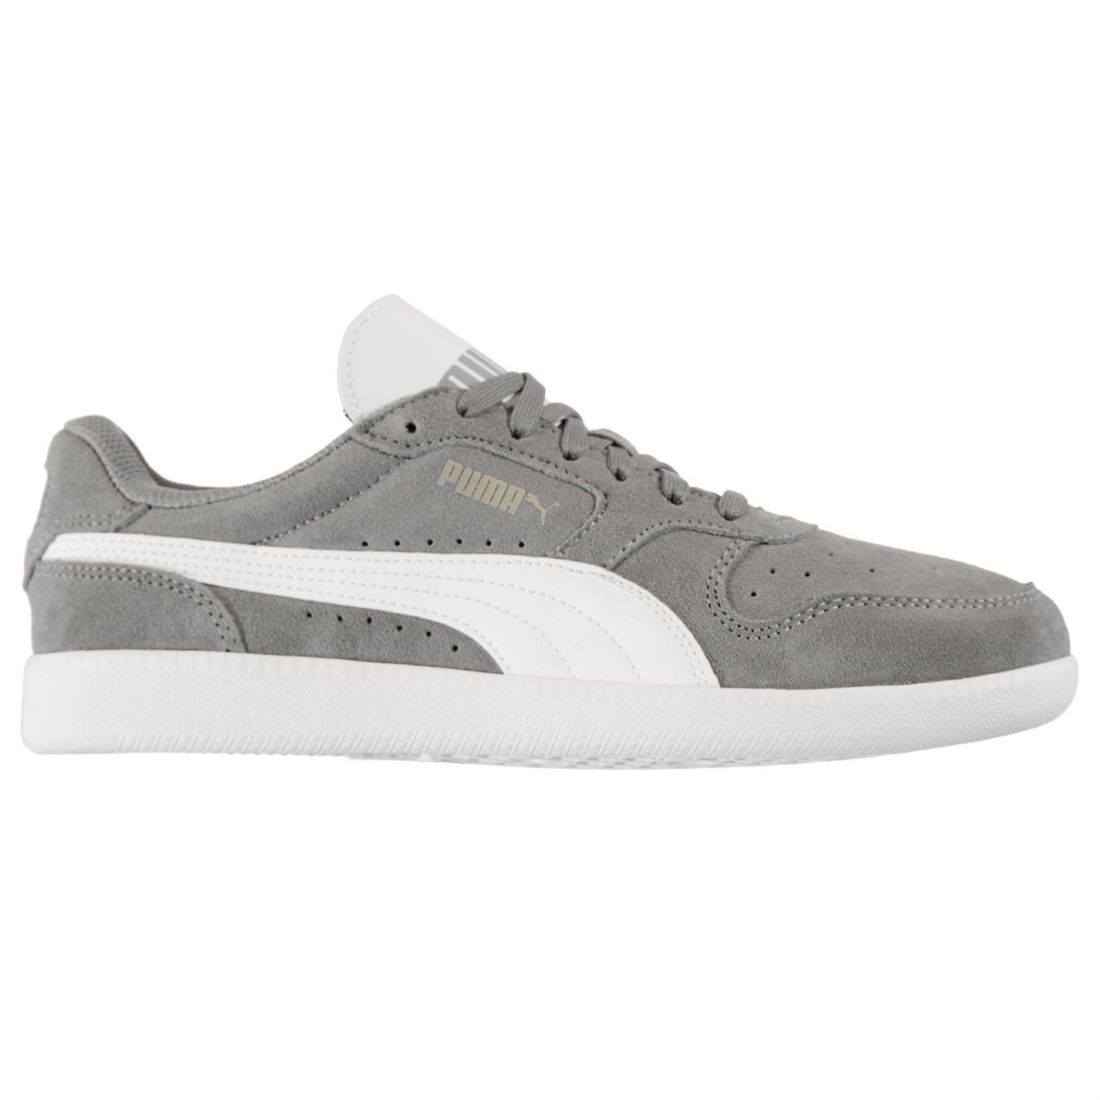 Puma Mens Icra Suede Trainers Lace Up Padded Ankle Collar Everyday ... 9ea45d81e